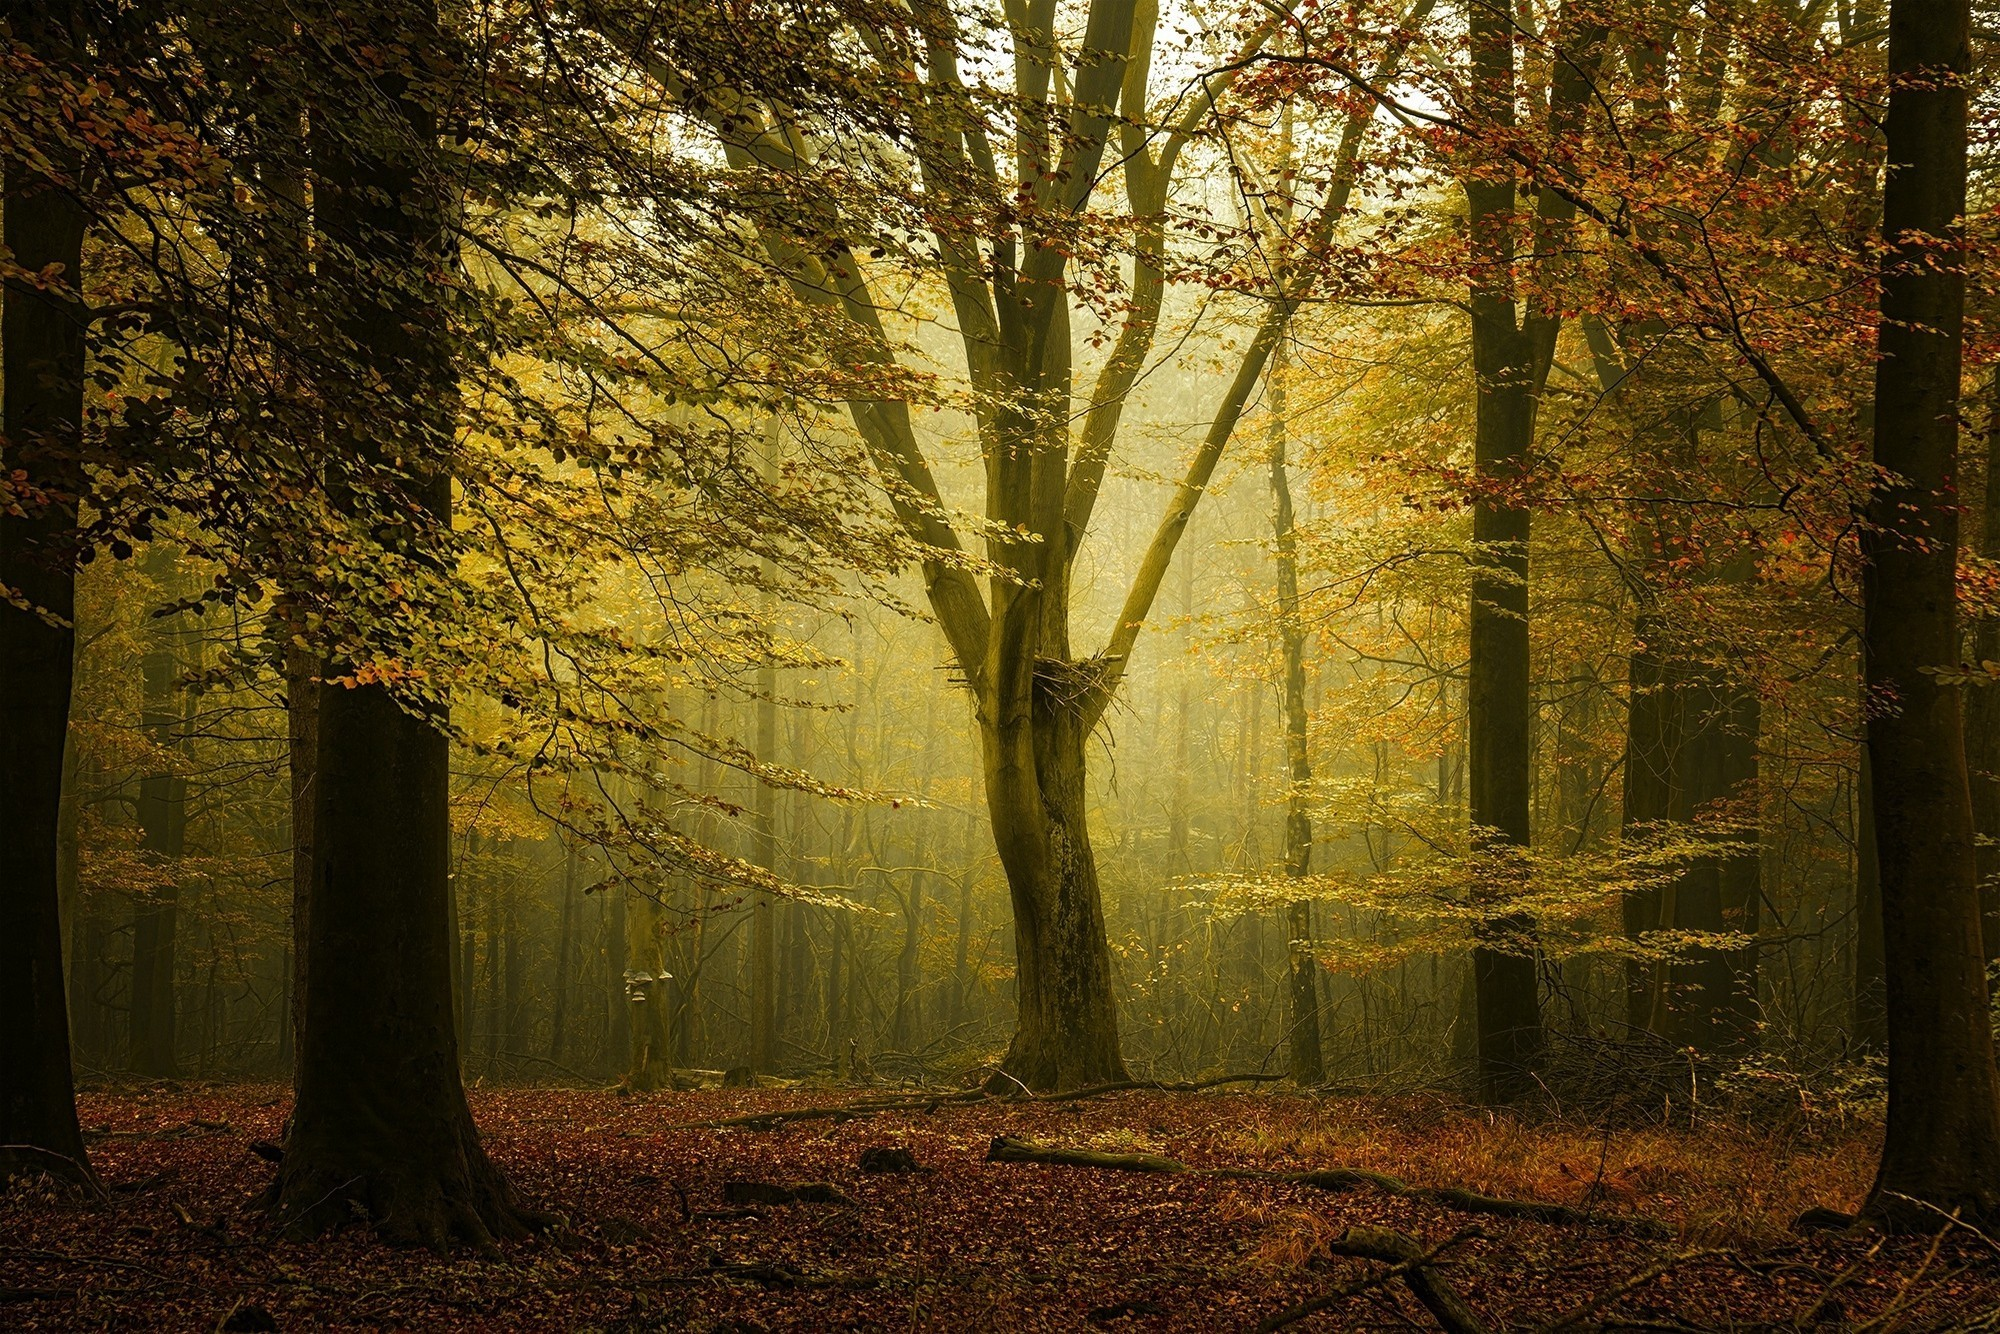 Netherlands Fall Wallpaper Landscape Nature Fall Forest Sunlight Mist Leaves